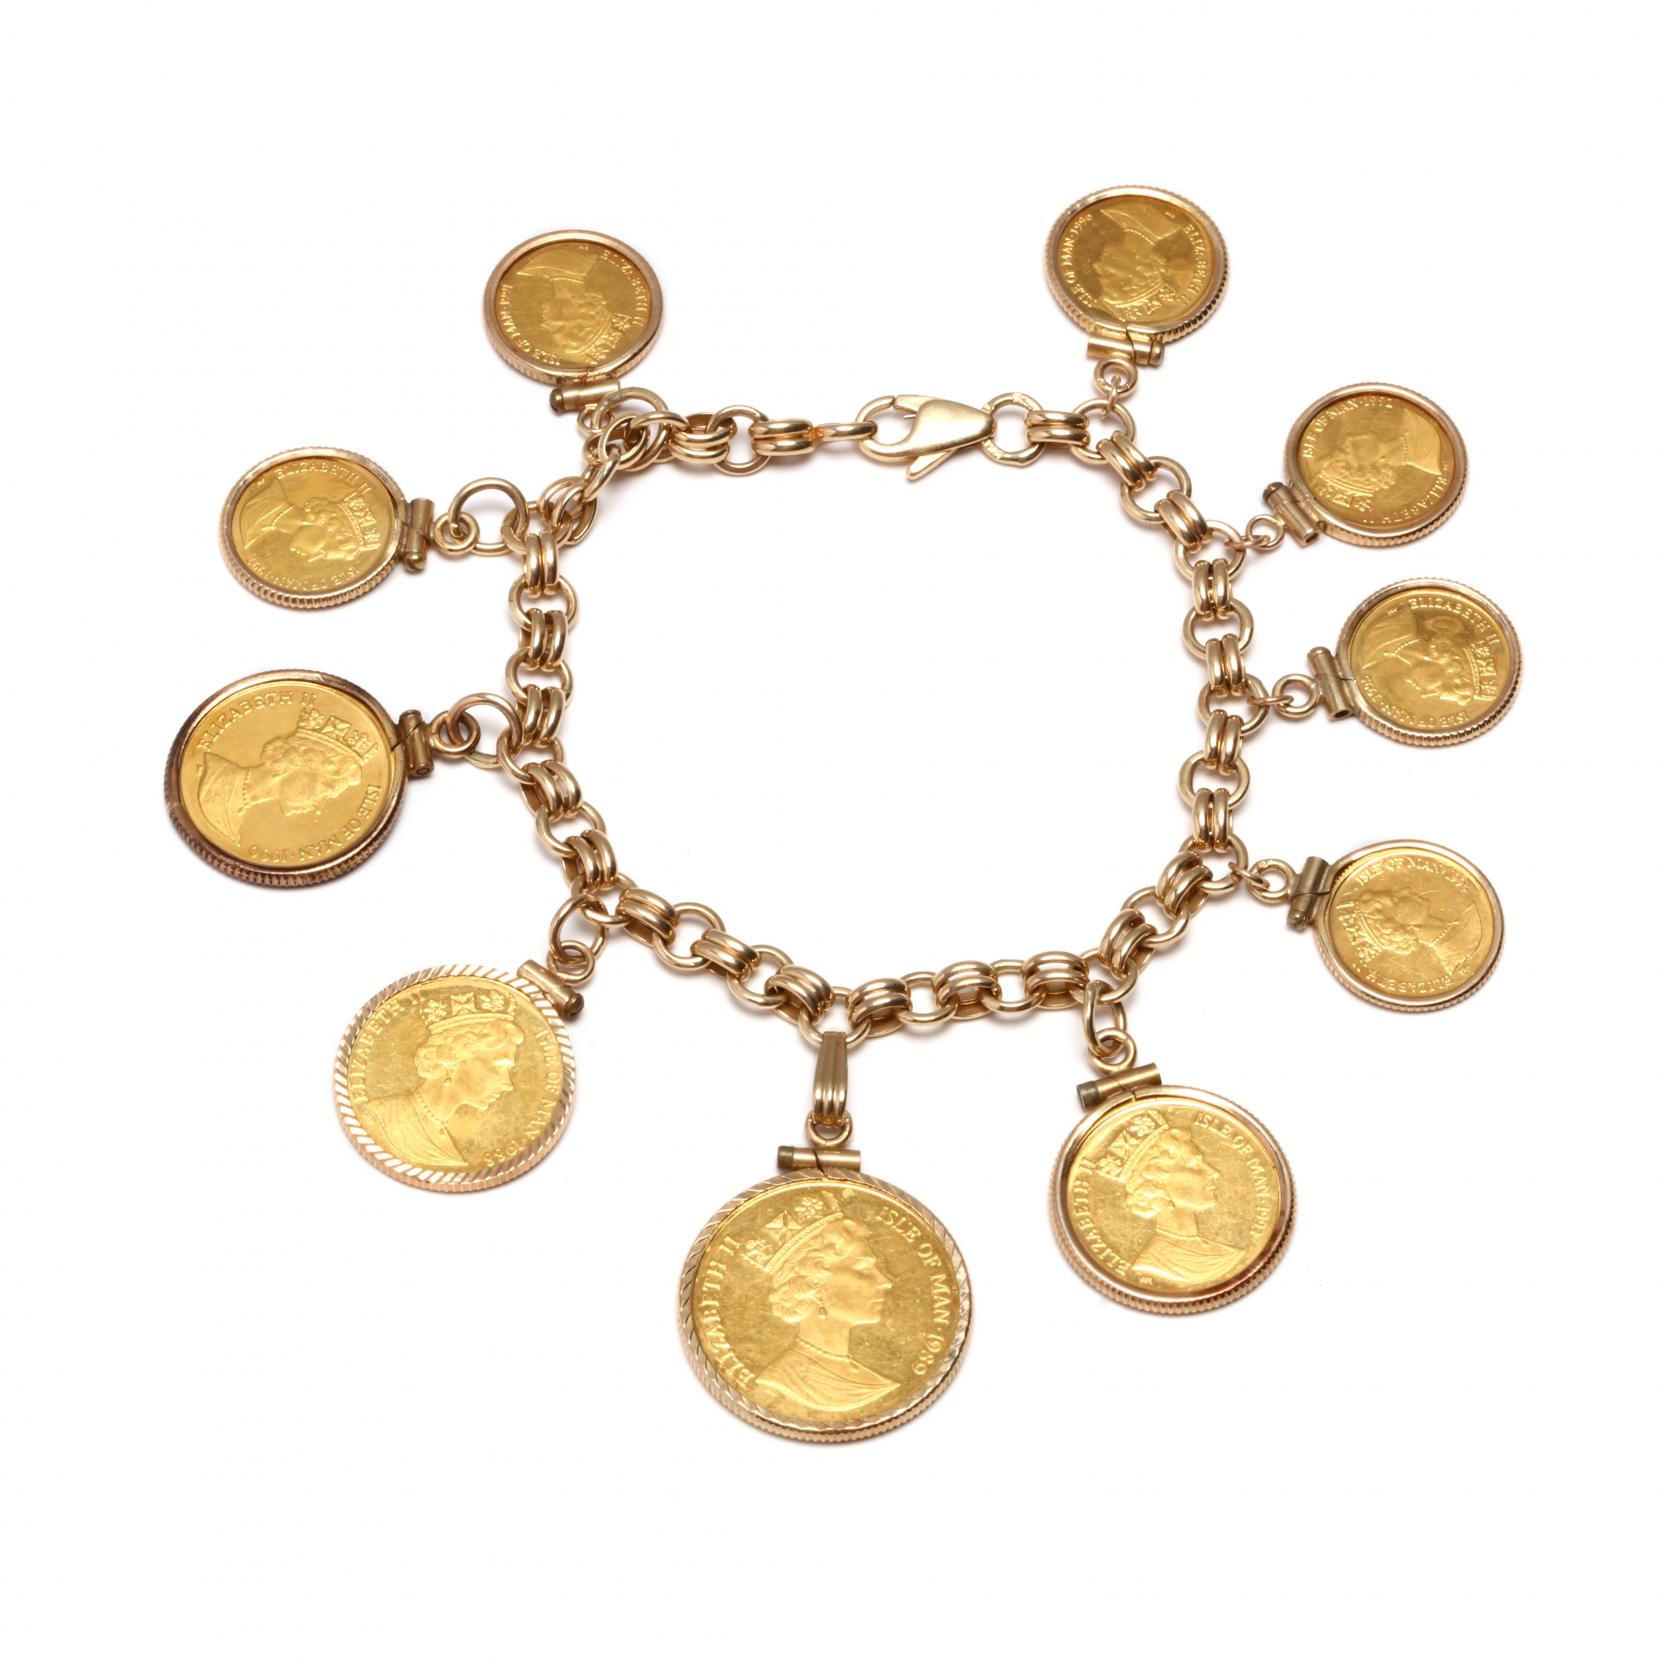 14kt-charm-bracelet-with-elizabeth-ii-isle-of-man-cat-theme-gold-coins